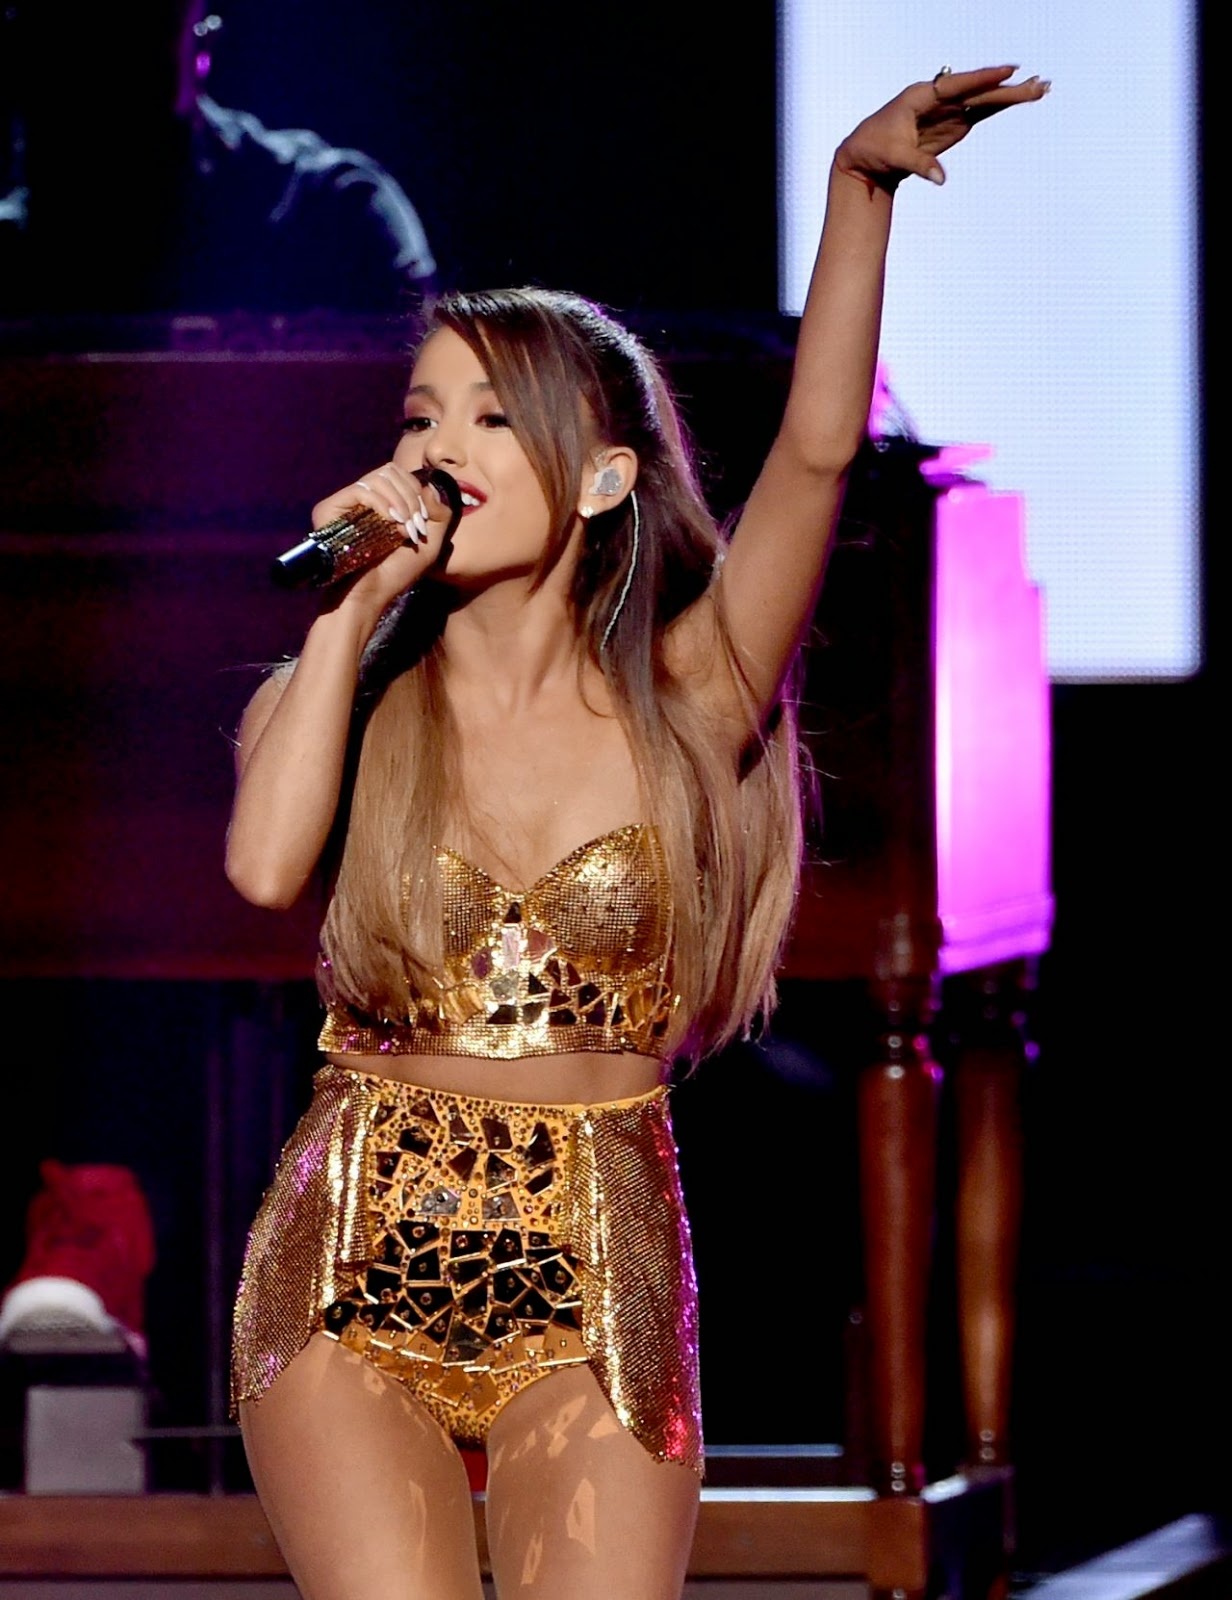 Ariana Grande performs at the 2014 American Music Awards in a gold cropped top and mini skirt